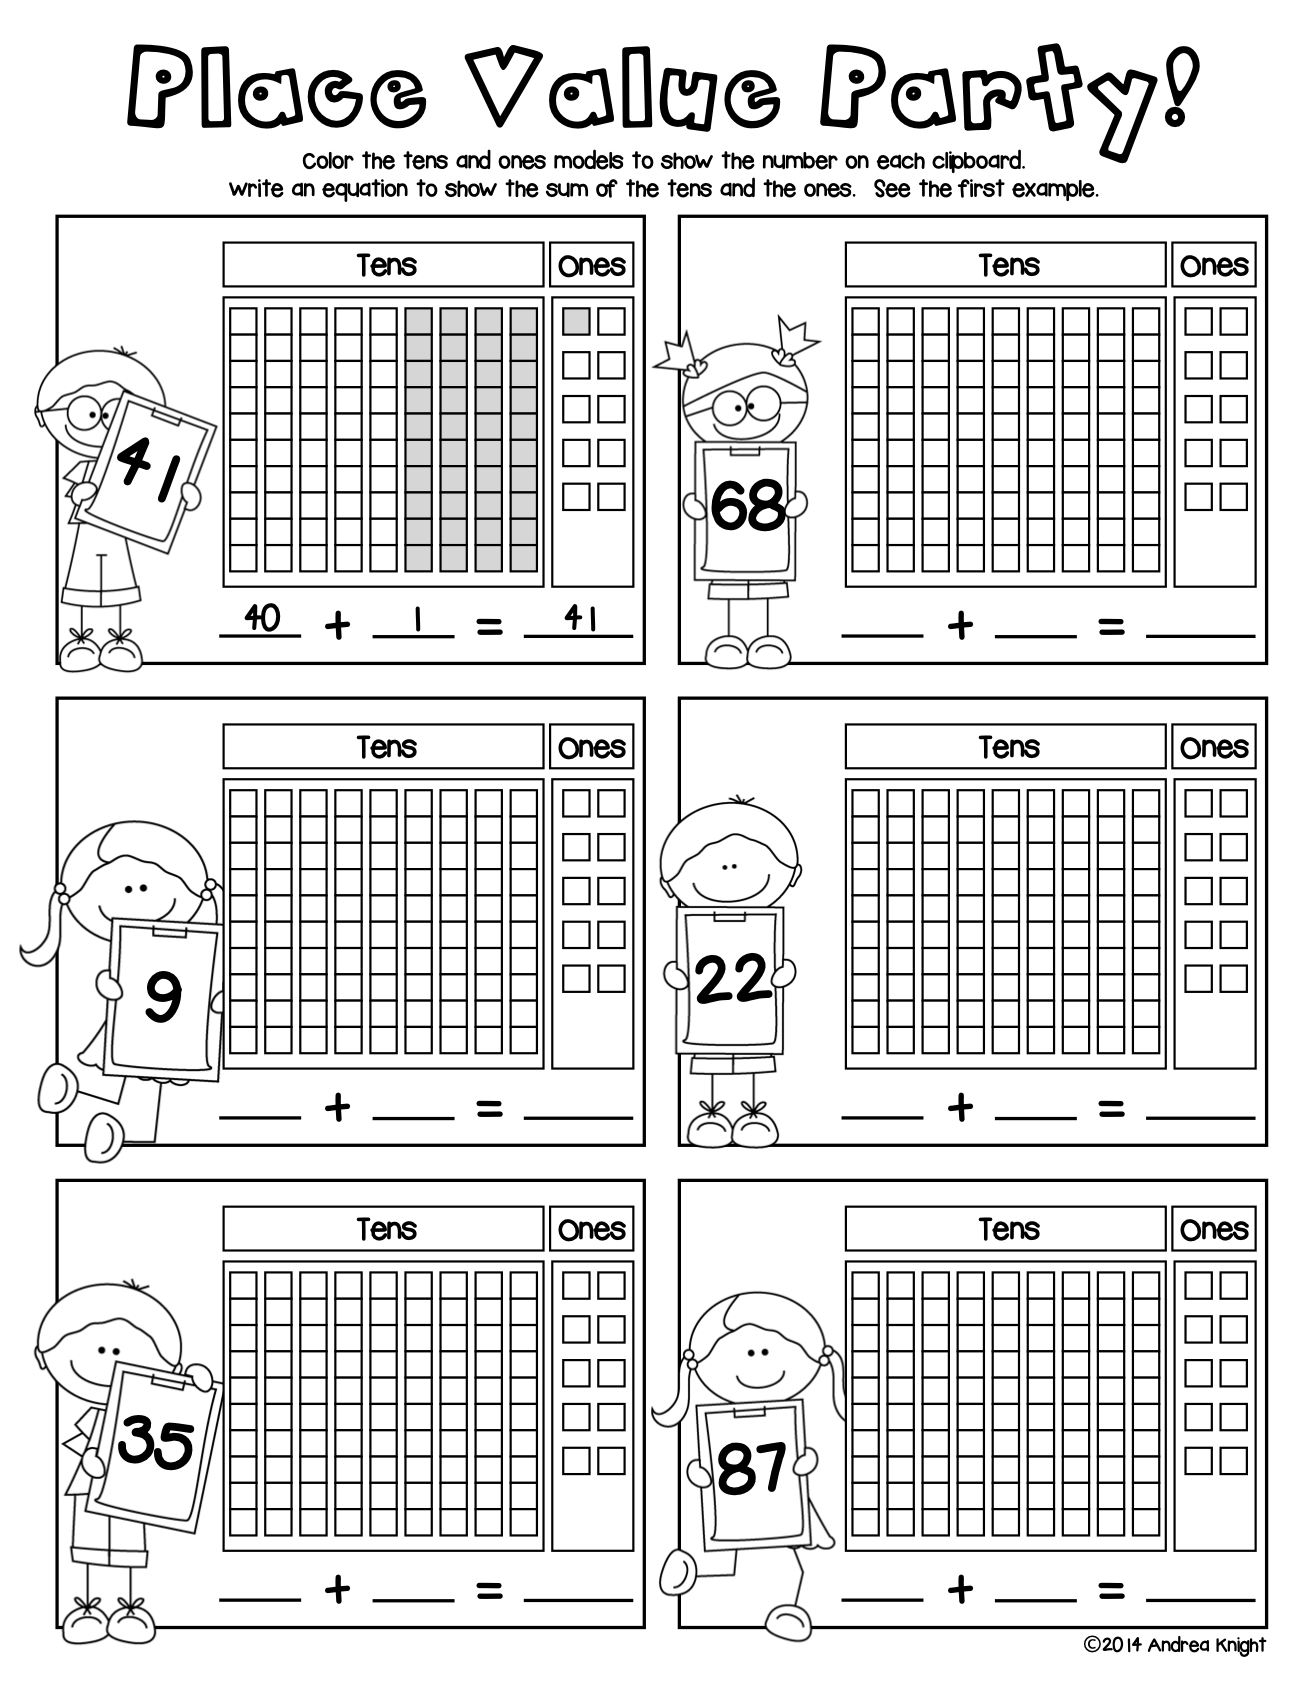 Place Value Math Practice Worksheets For Grades 1 2